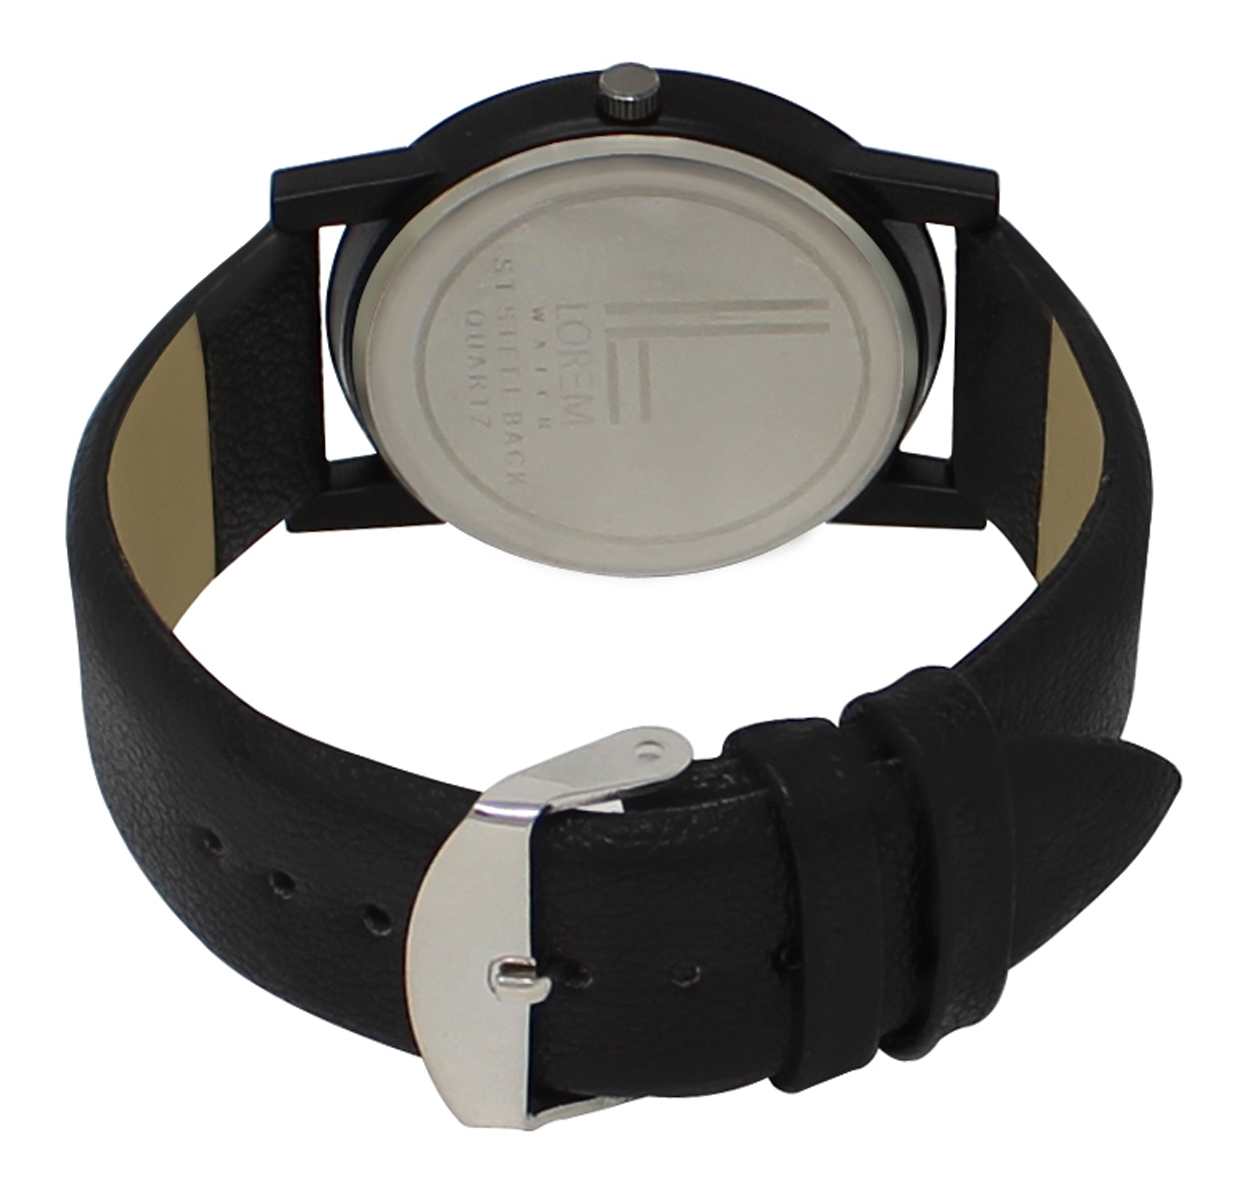 Analogue Black Dial Watch For Men And Boys